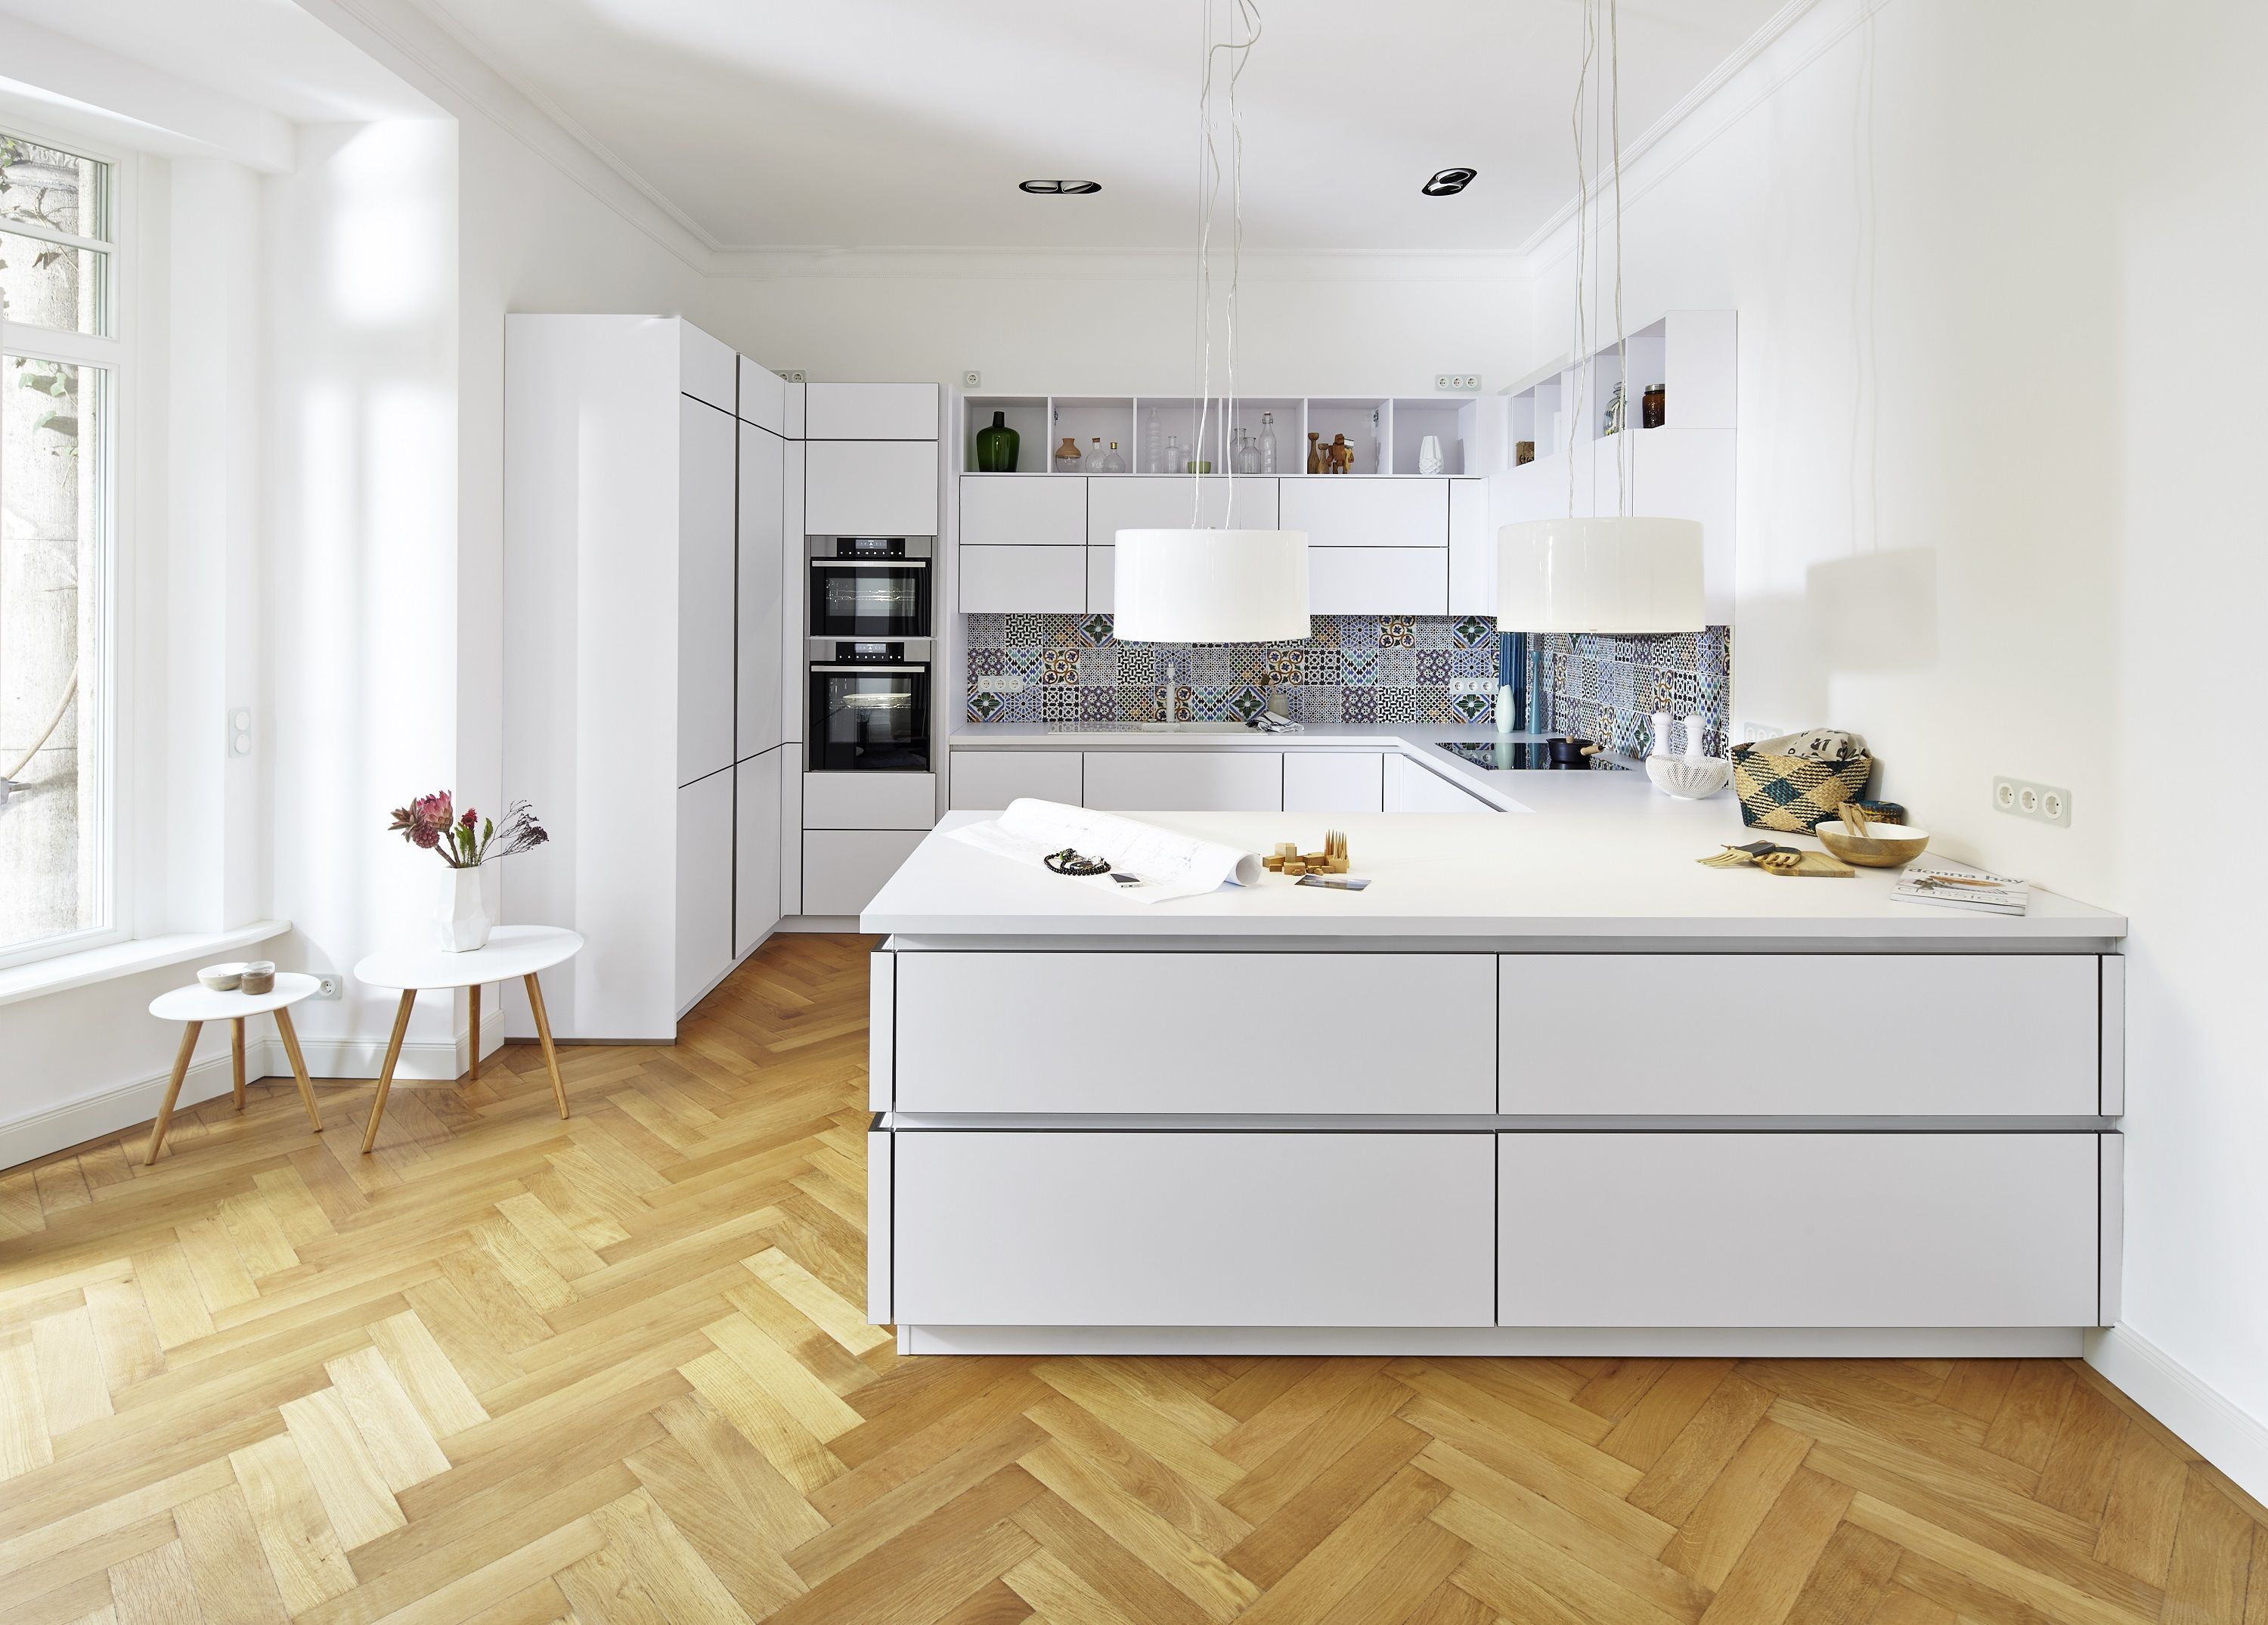 Bauformat Küche German Kitchen We Will Be Displaying With Bauformat At The